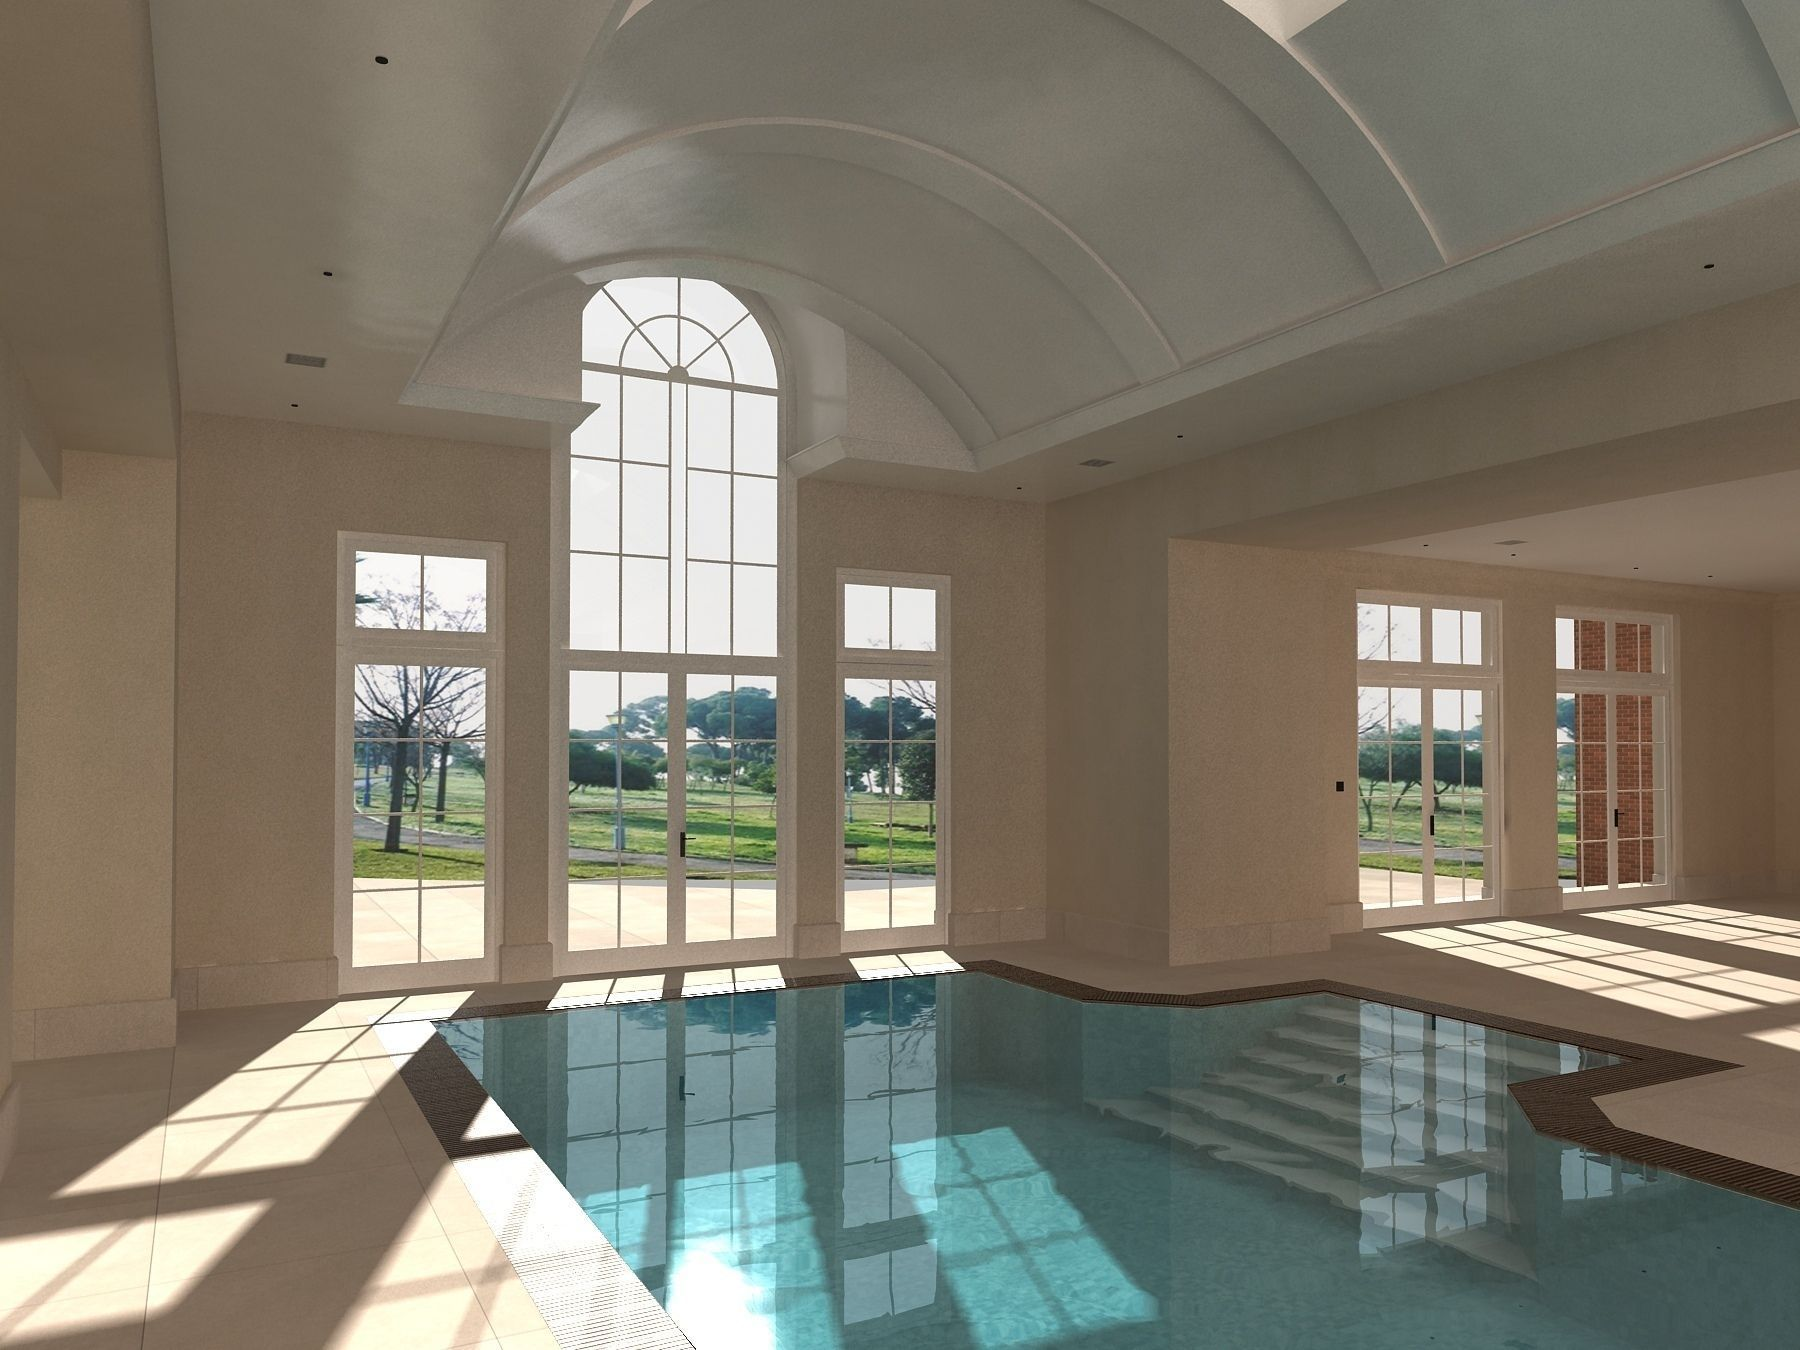 two_indoor_pools_3d_model_max_0e77ce6b-36c6-4f70-af27-41a55e78fec5.jpg